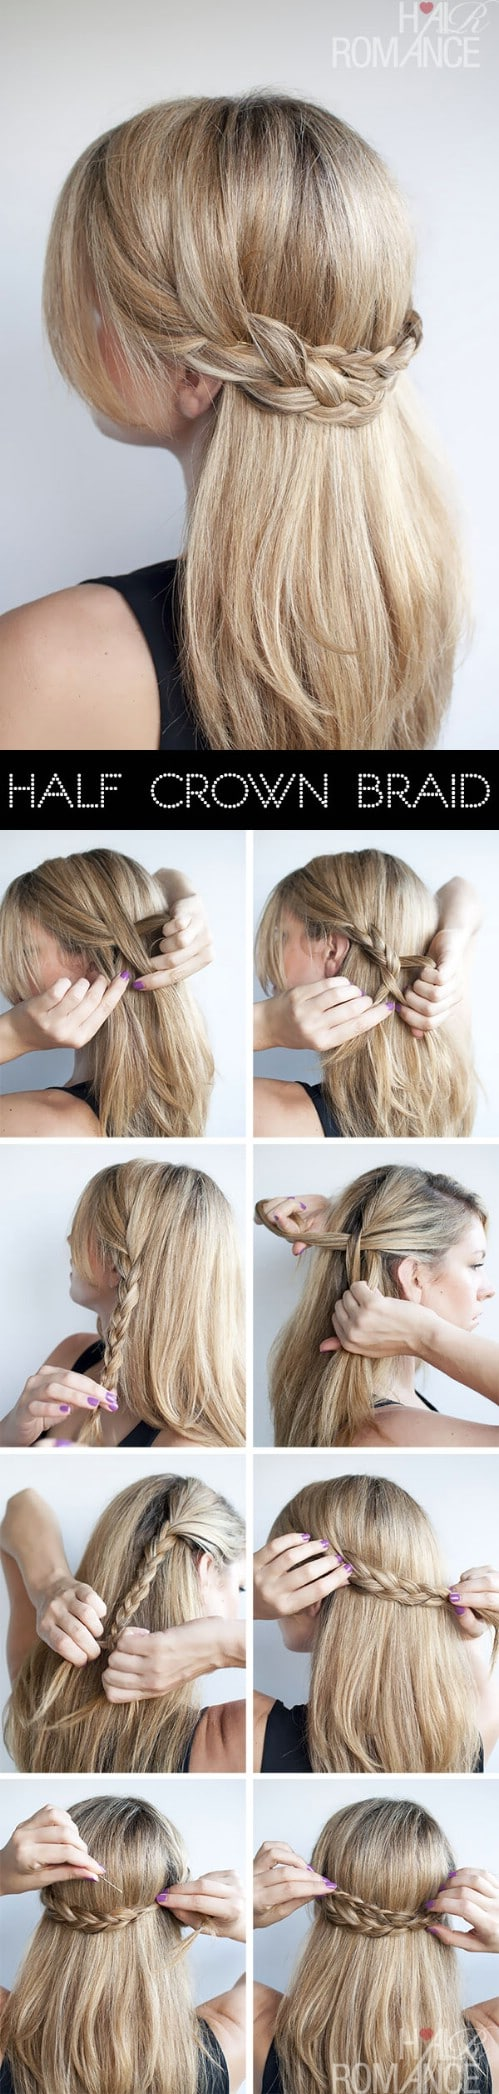 5 Gorgeous 5-Minute Hairstyles to Save You some Snooze Time - DIY